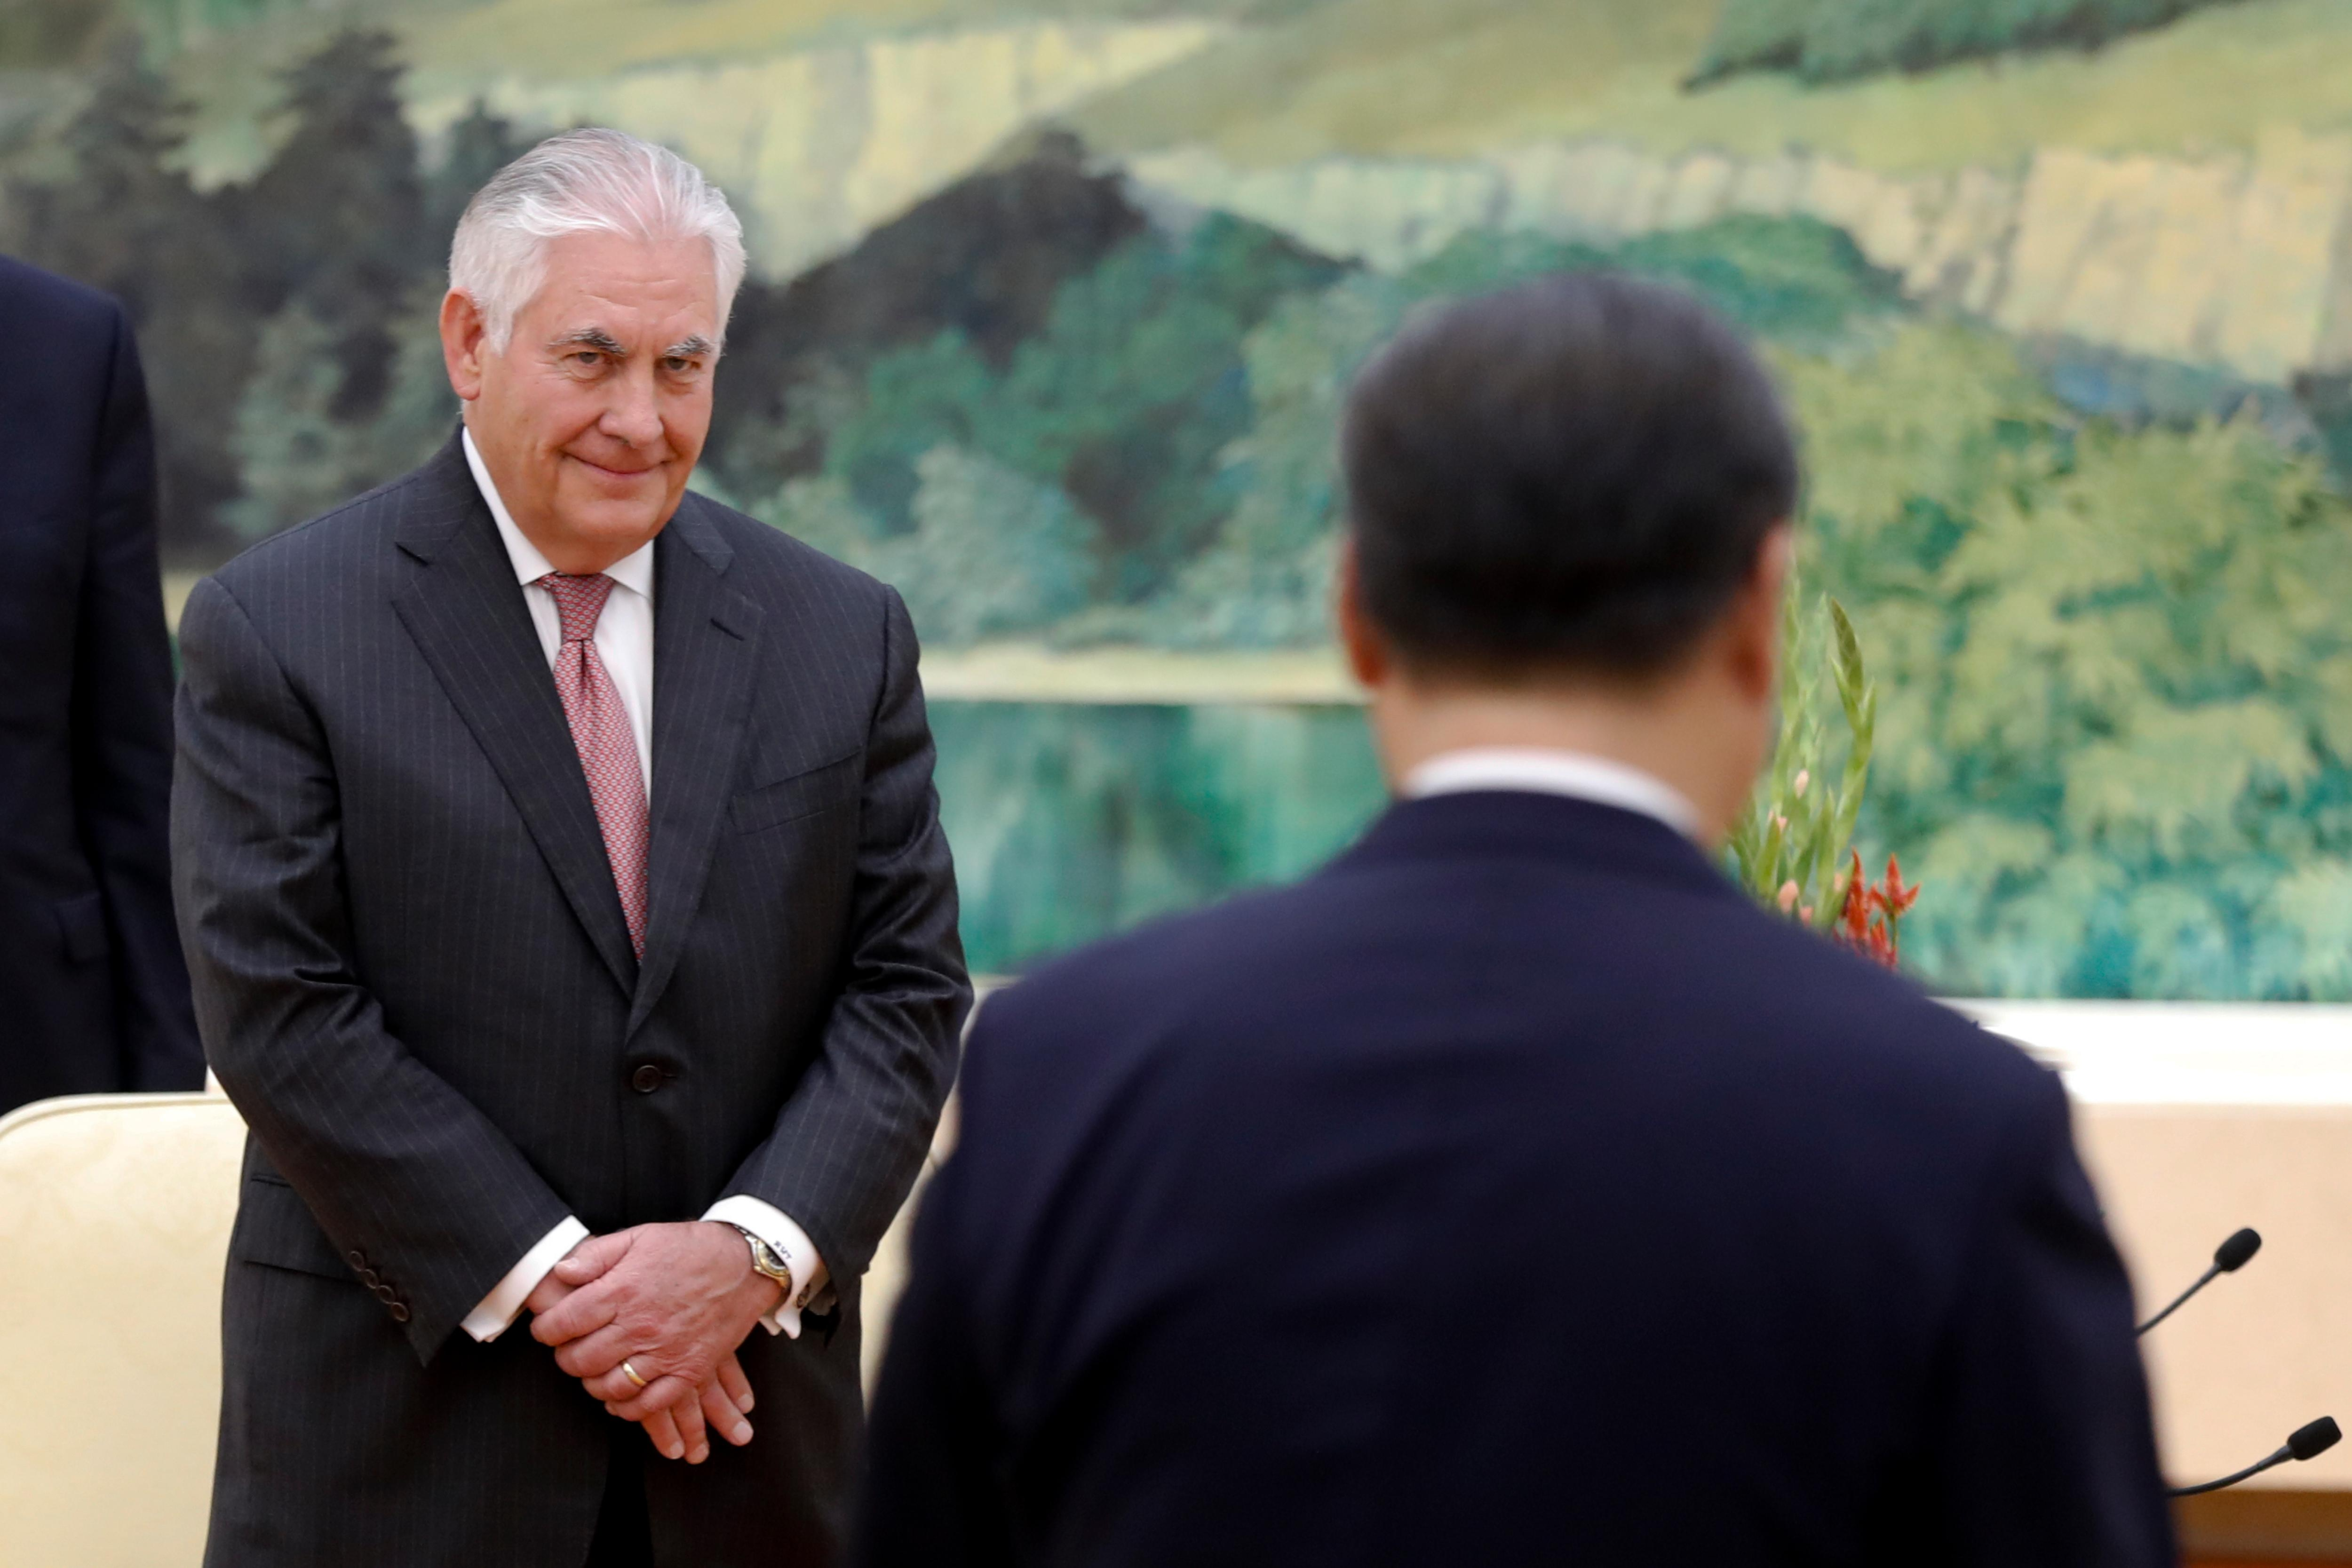 U.S. Secretary of State Rex Tillerson, left, looks at China's President Xi Jinping walks to his seat during a meeting at the Great Hall of the People in Beijing, Saturday, Sept. 30, 2017. (AP Photo/Andy Wong, Pool)